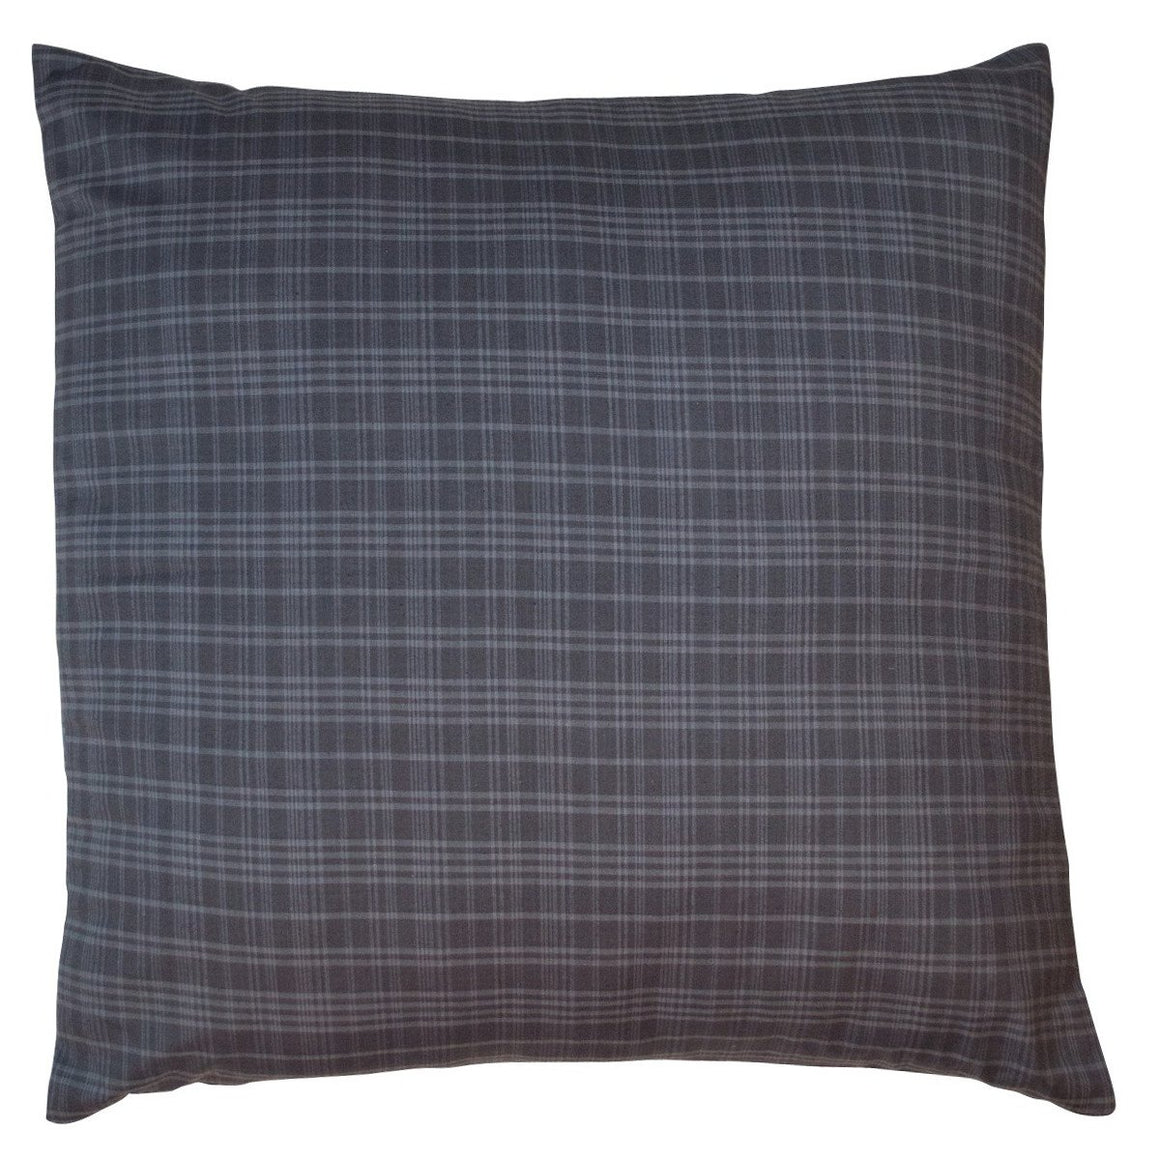 Indigo Plaid Euro Sham